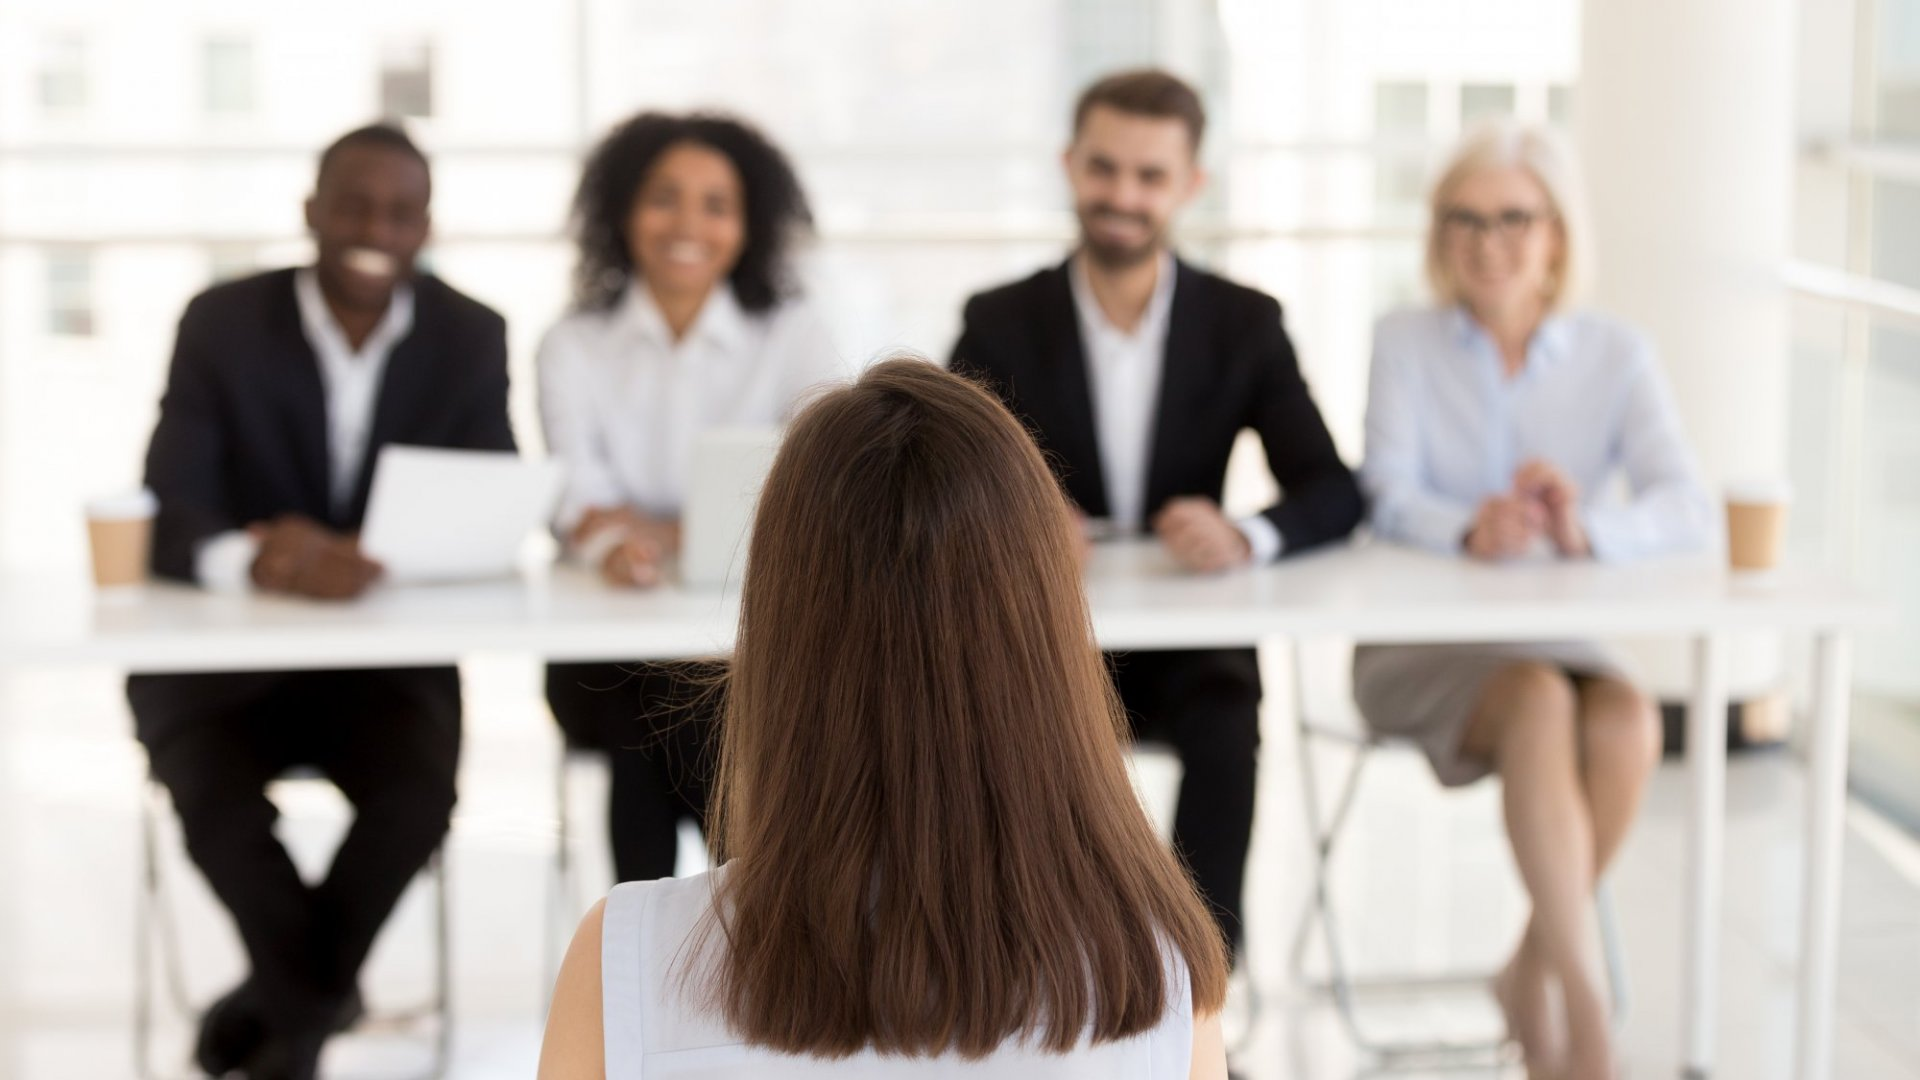 Hiring an Executive? 7 Best Practices for Vetting Candidates